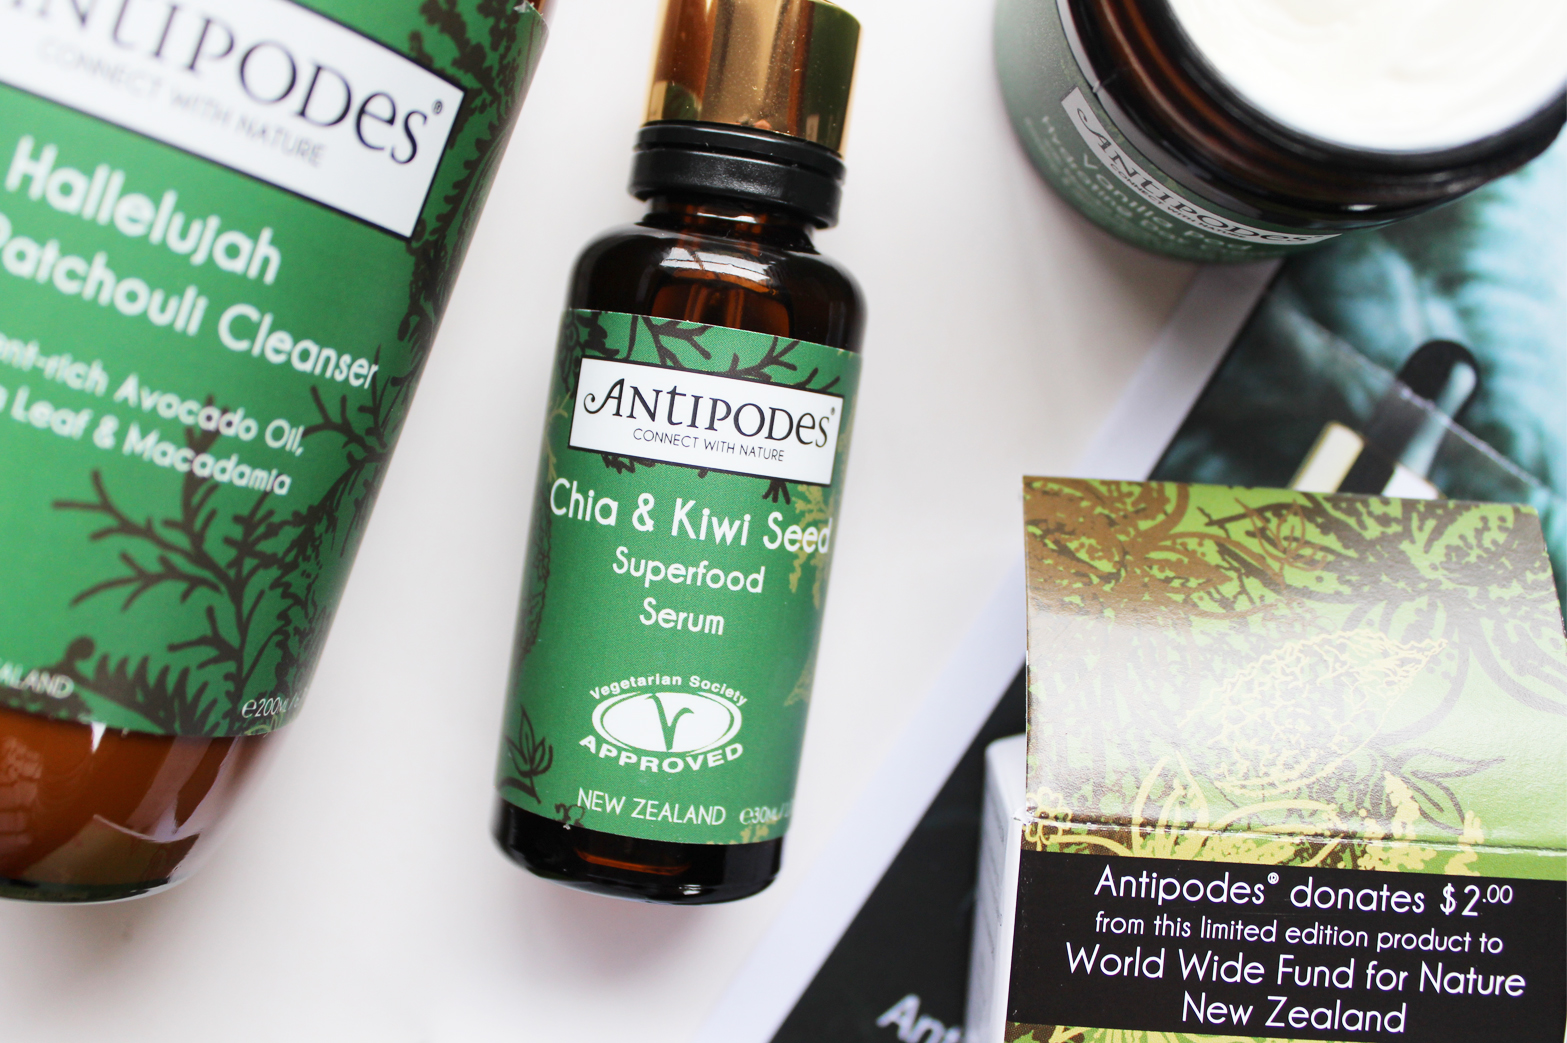 ANTIPODES | Skincare Review Hallelujah Lime & Patchouli Cleanser, Chia & Kiwi Seed Superfood Serum + Vanilla Pod Day Cream - CassandraMyee